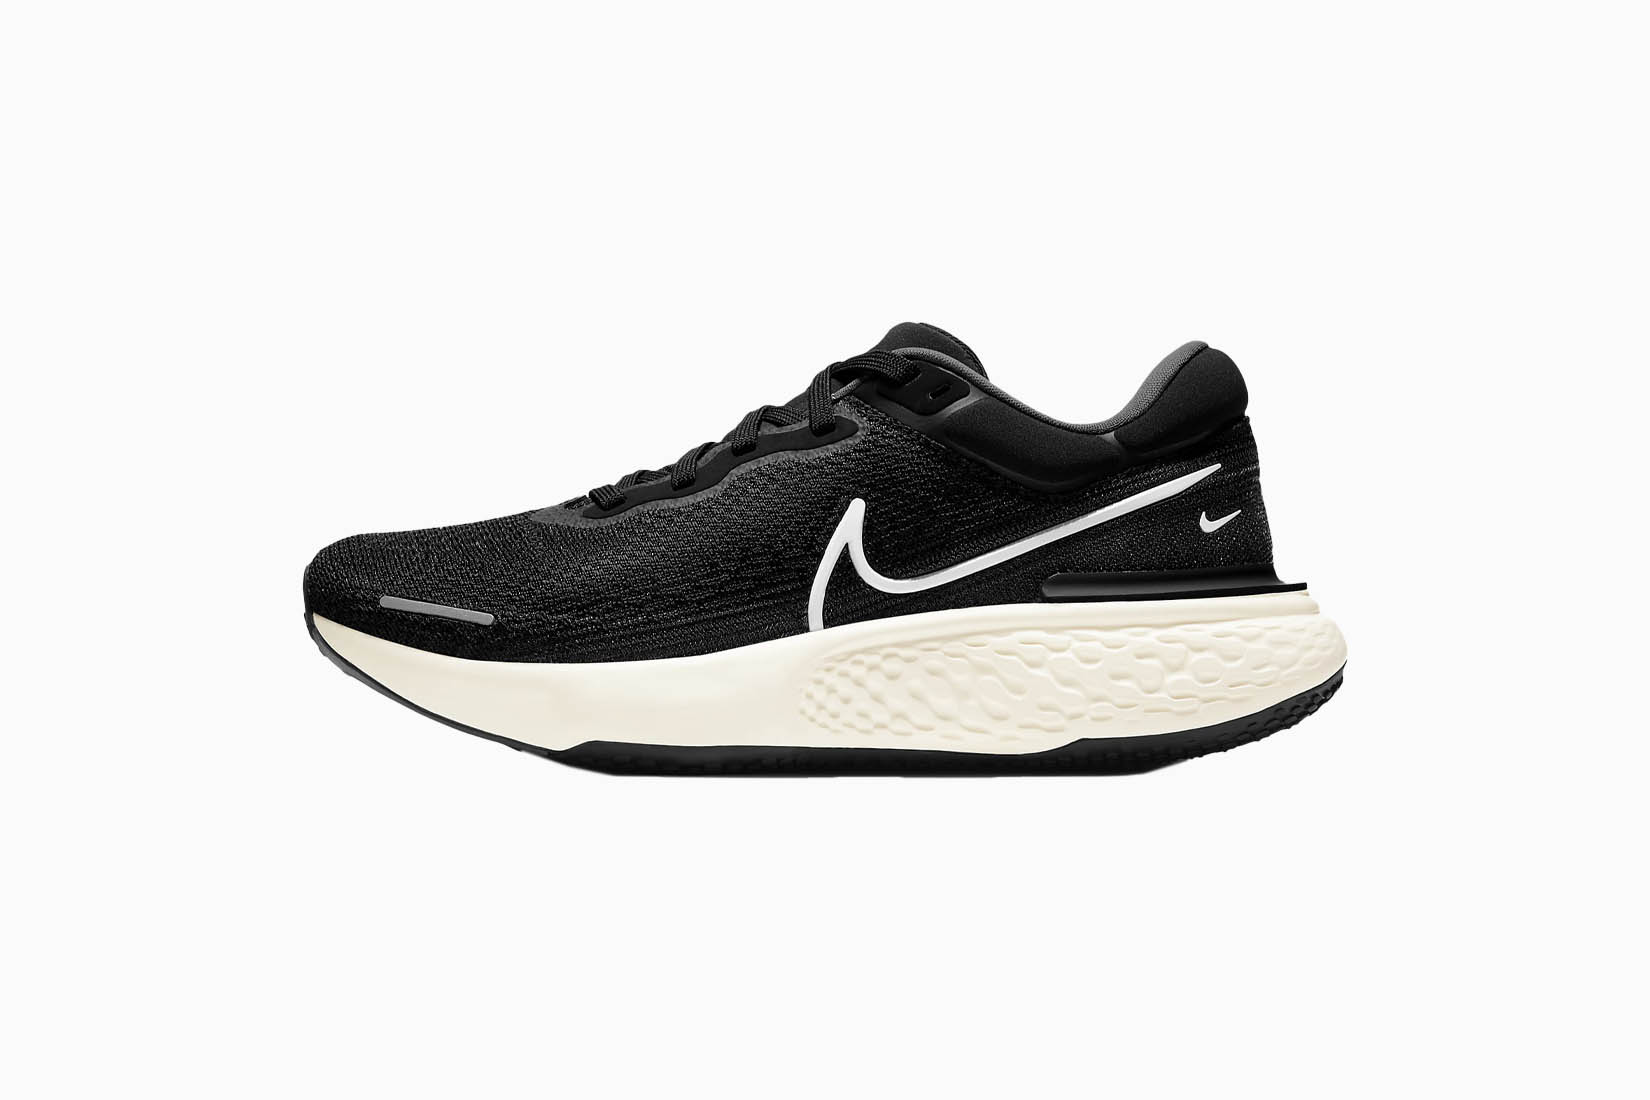 best shoes for standing all day men nike review Luxe Digital